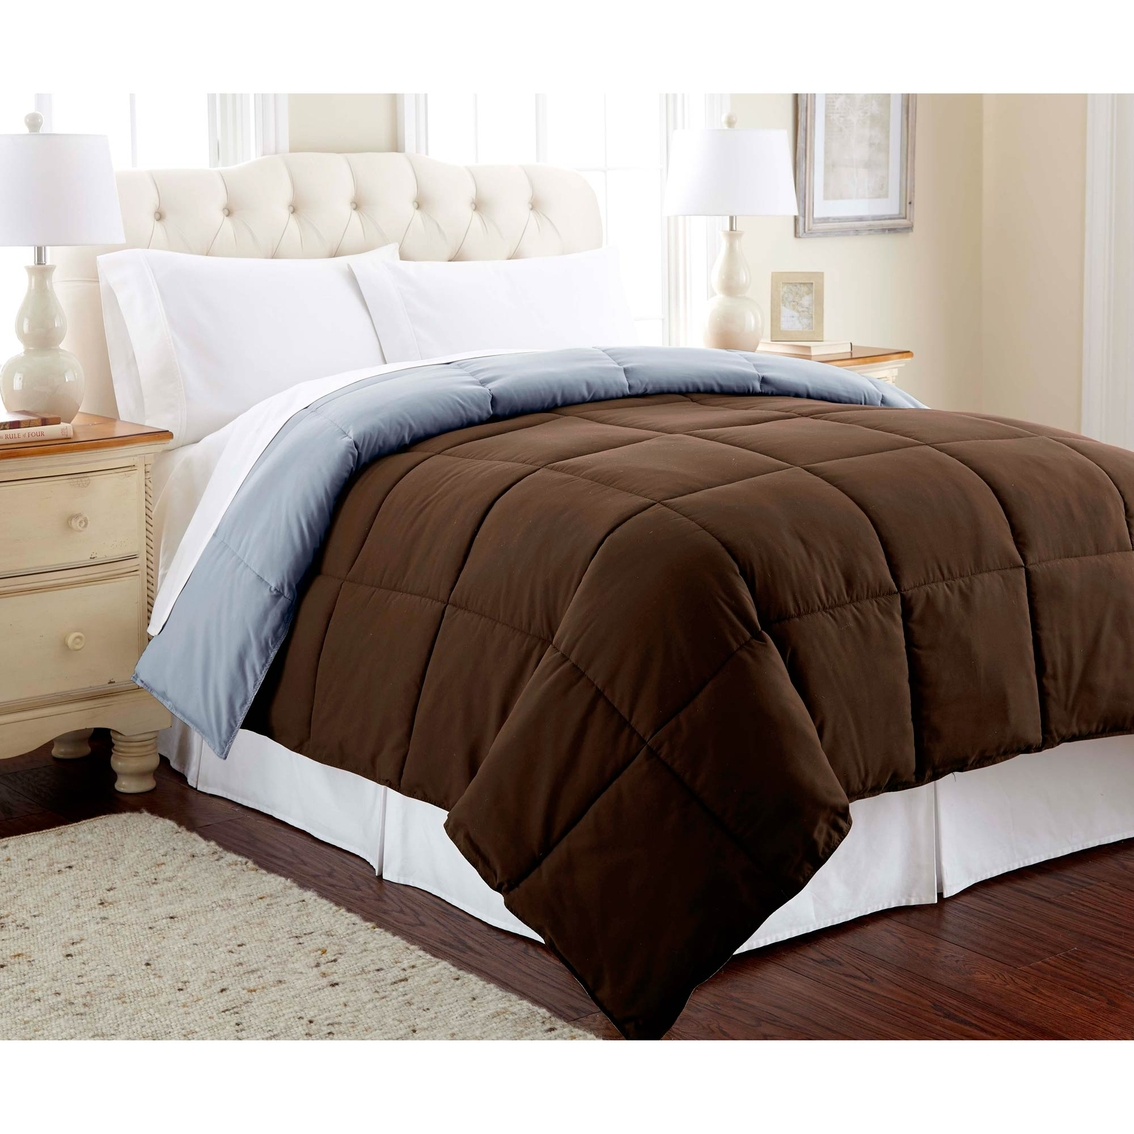 Cleaning Down Comforter The Ultimate Guide On How To Wash